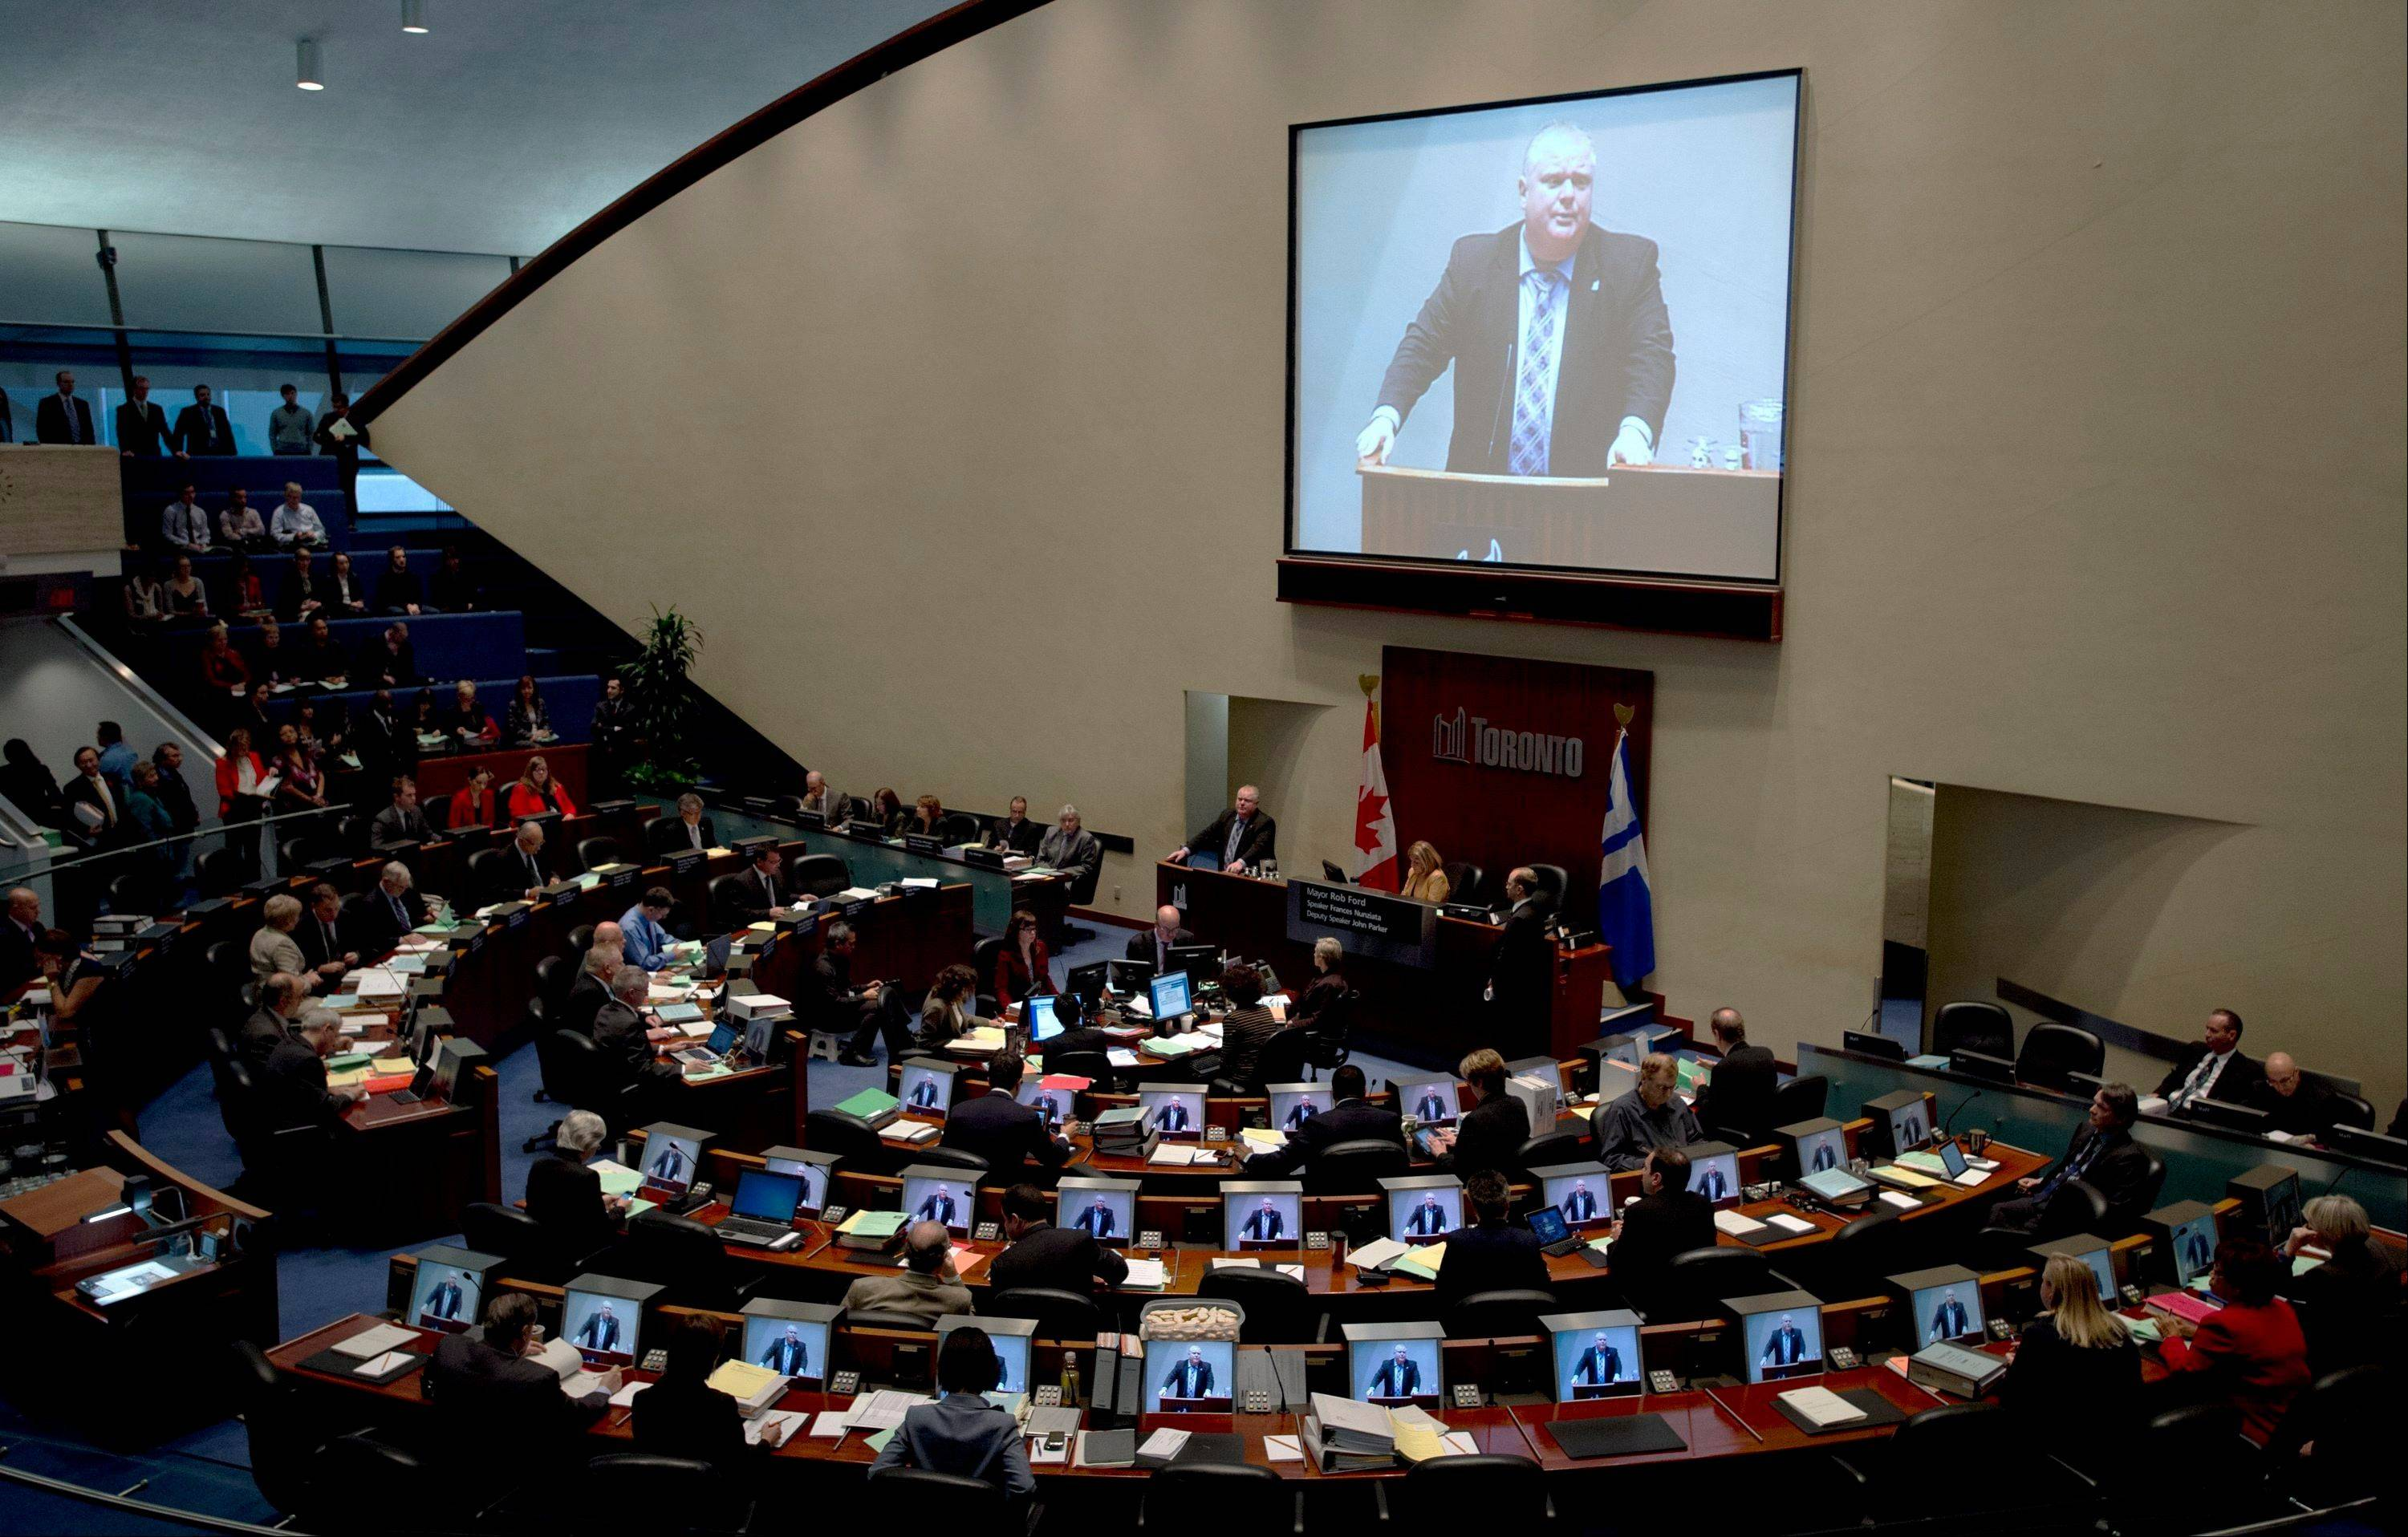 Mayor Rob Ford�s refusal to resign has confounded Toronto�s city council, where many members agree that his erratic behavior has consumed Toronto�s politics and undermined efforts to tackle other challenges.